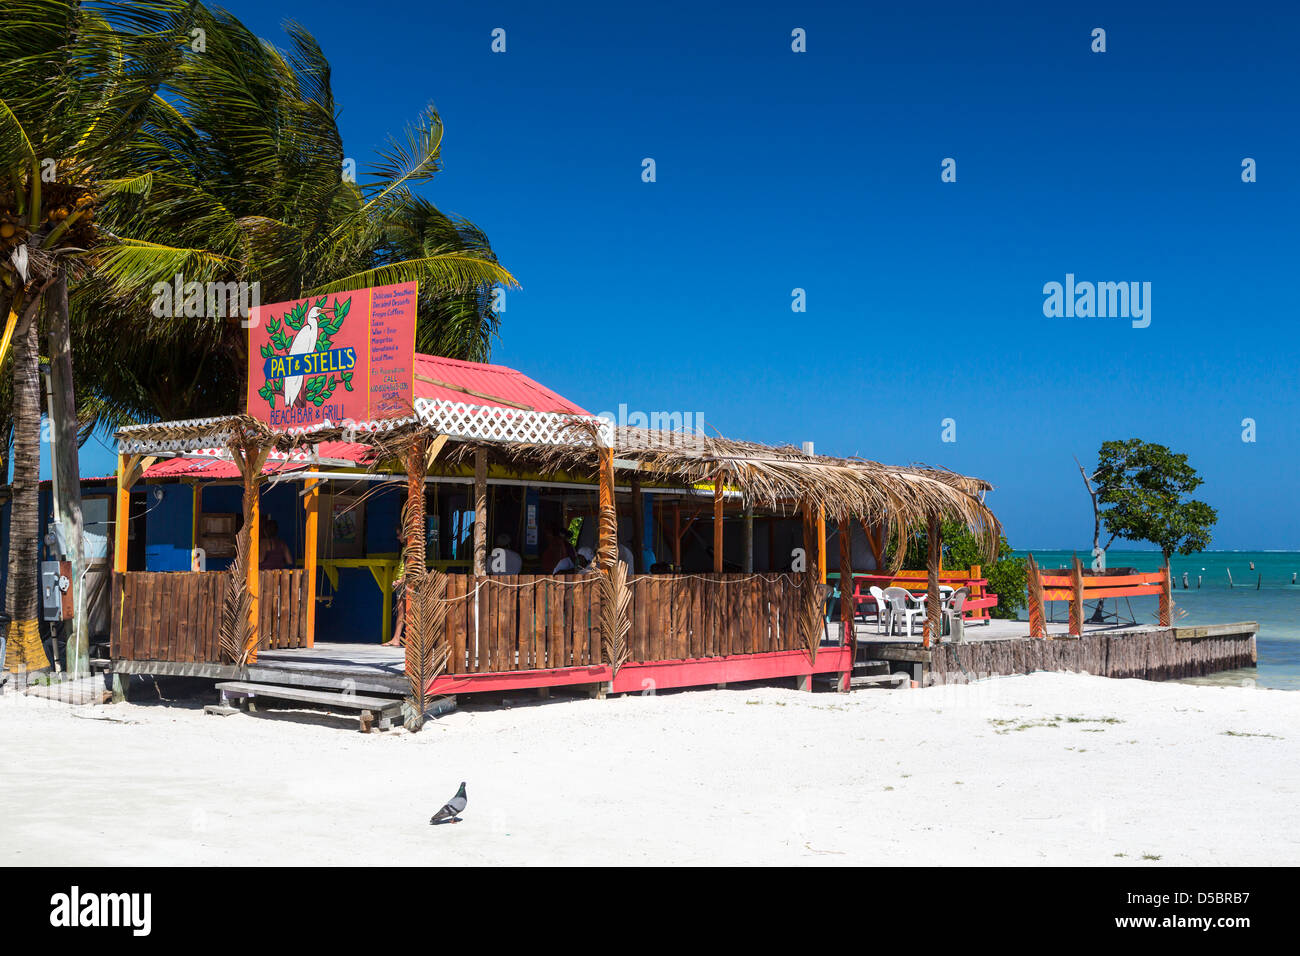 A beach-side restaurant on Cay Caulker, Belize. - Stock Image